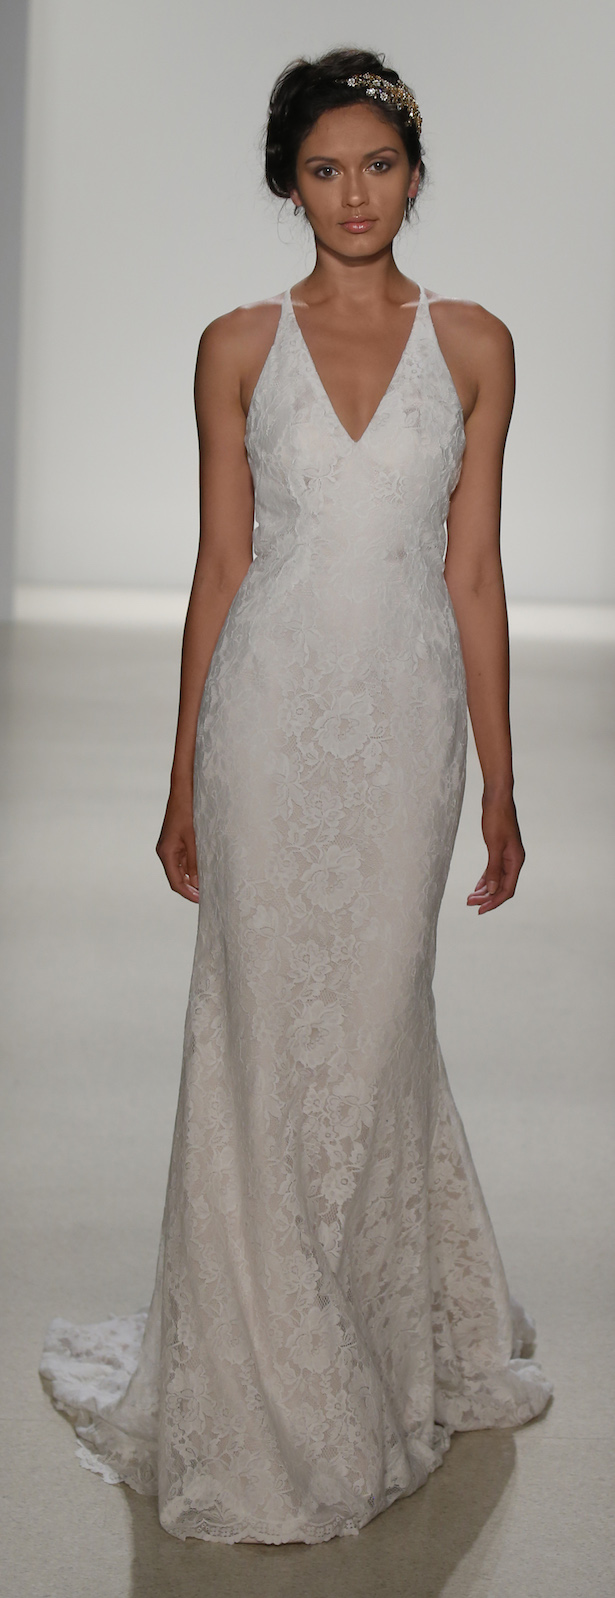 Racerback Lace Wedding Dress by Kelly Faetanini Spring 2018 - MARIANA